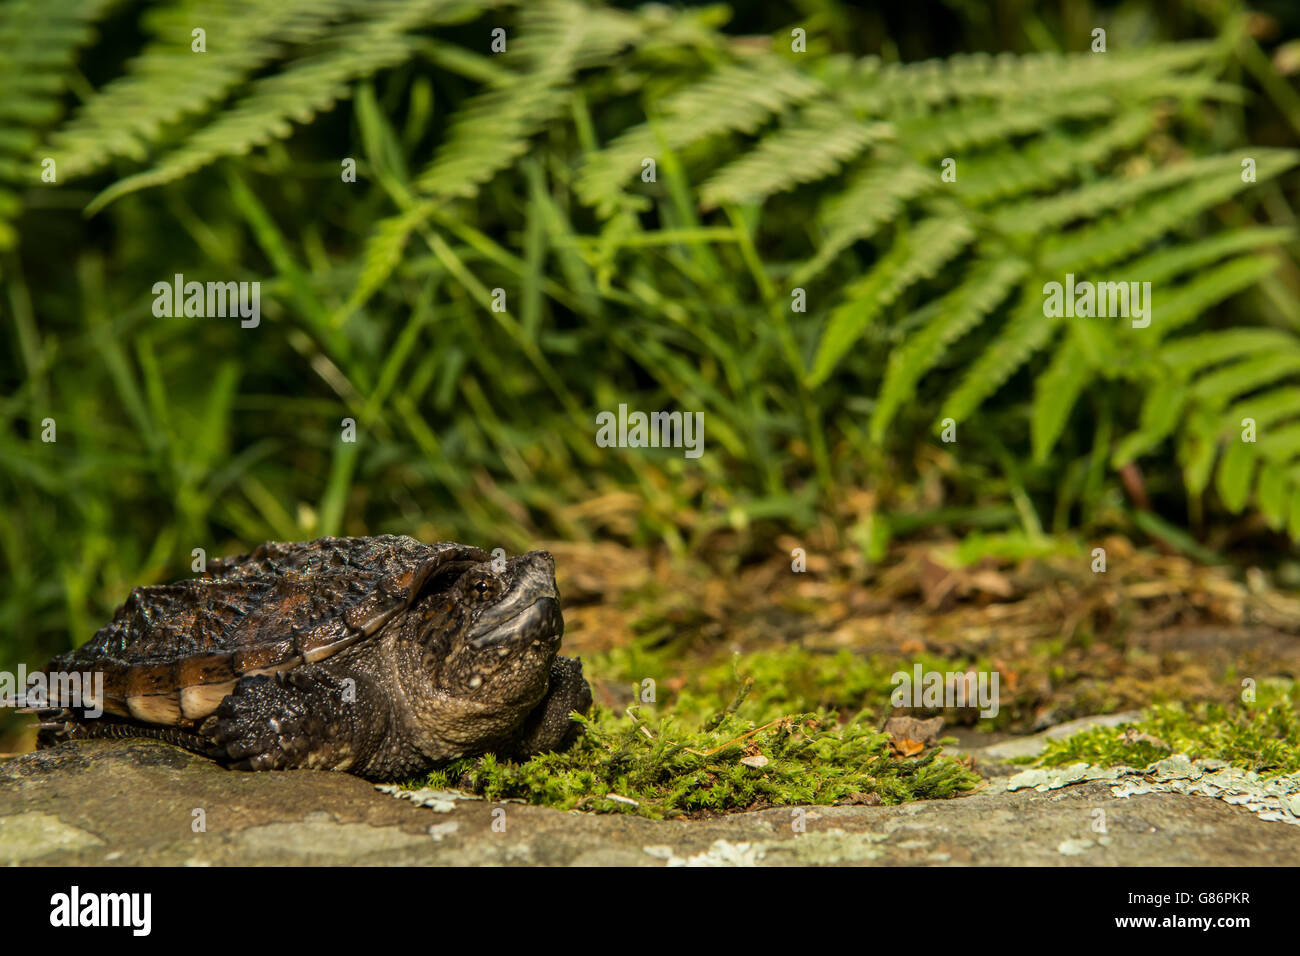 A close up of a baby snapping turtle. Stock Photo